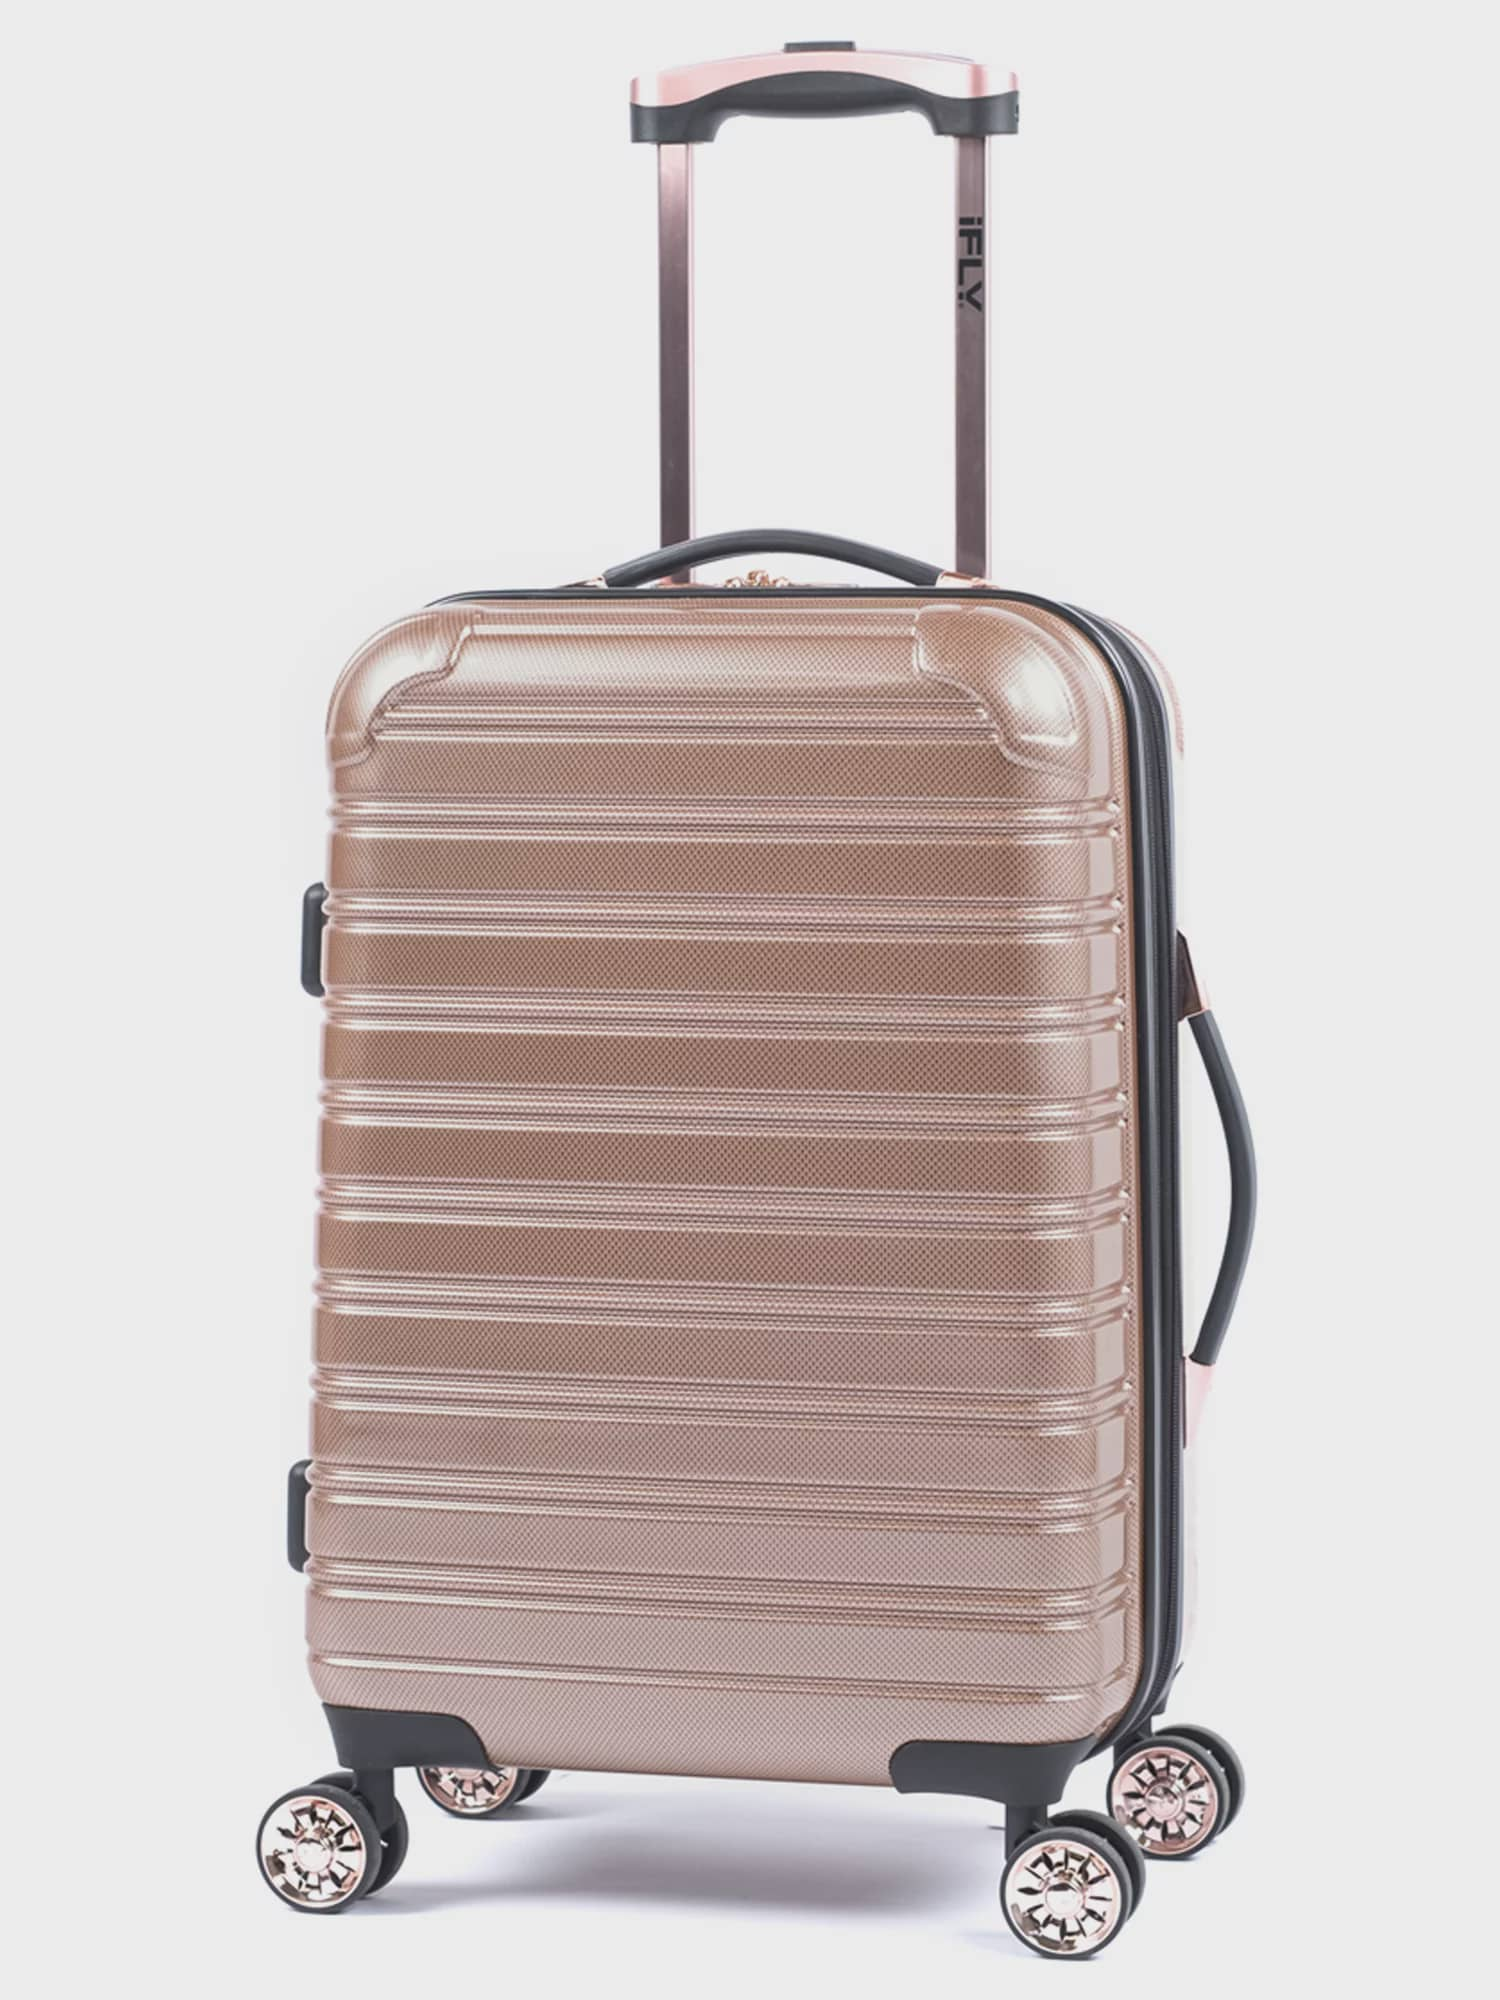 iFLY Hardside Fibertech Carry On Luggage, 20""